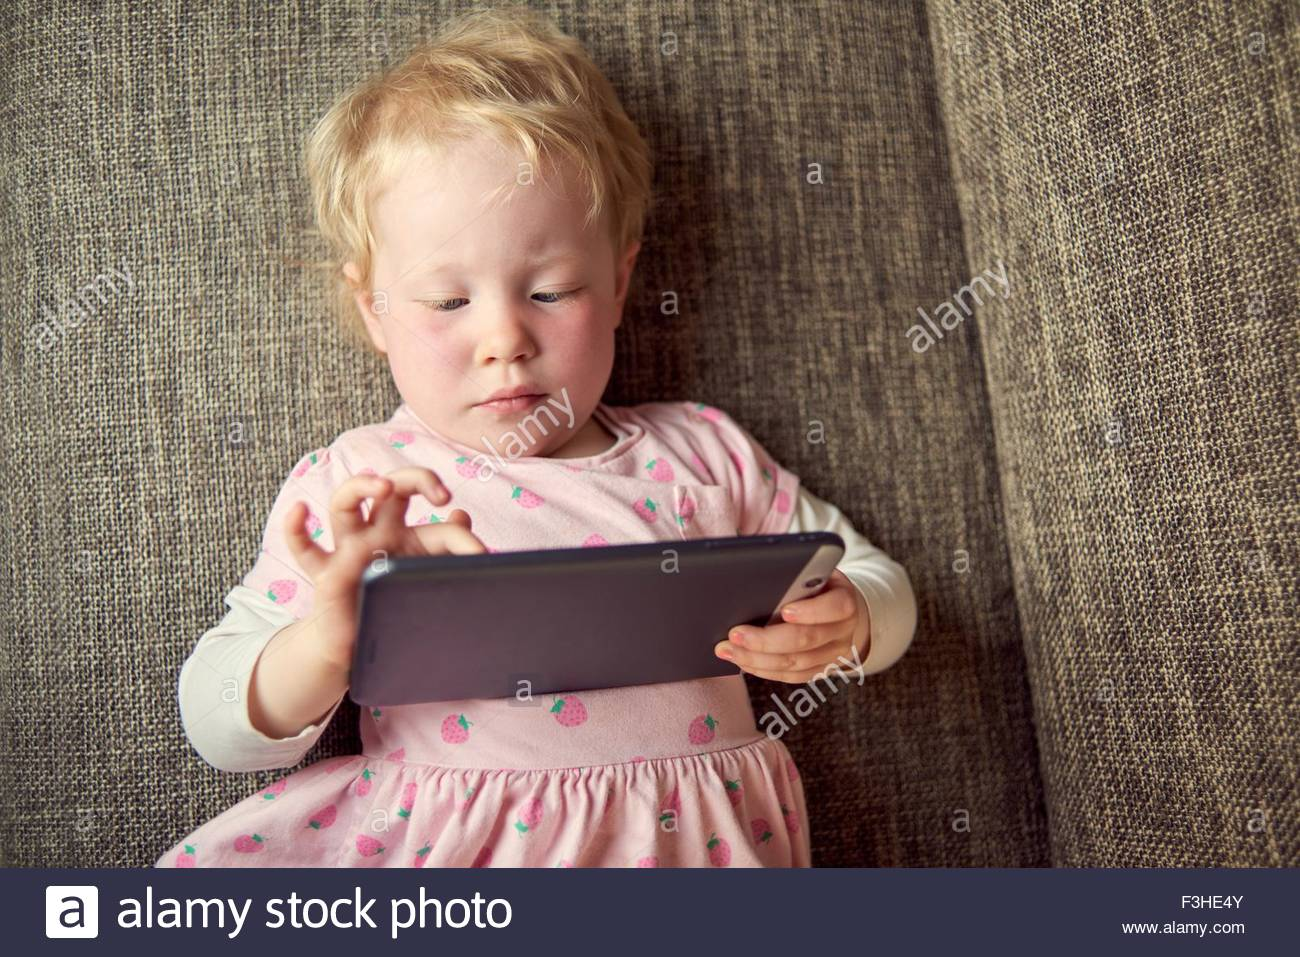 Young girl lying on sofa, holding digital tablet - Stock Image